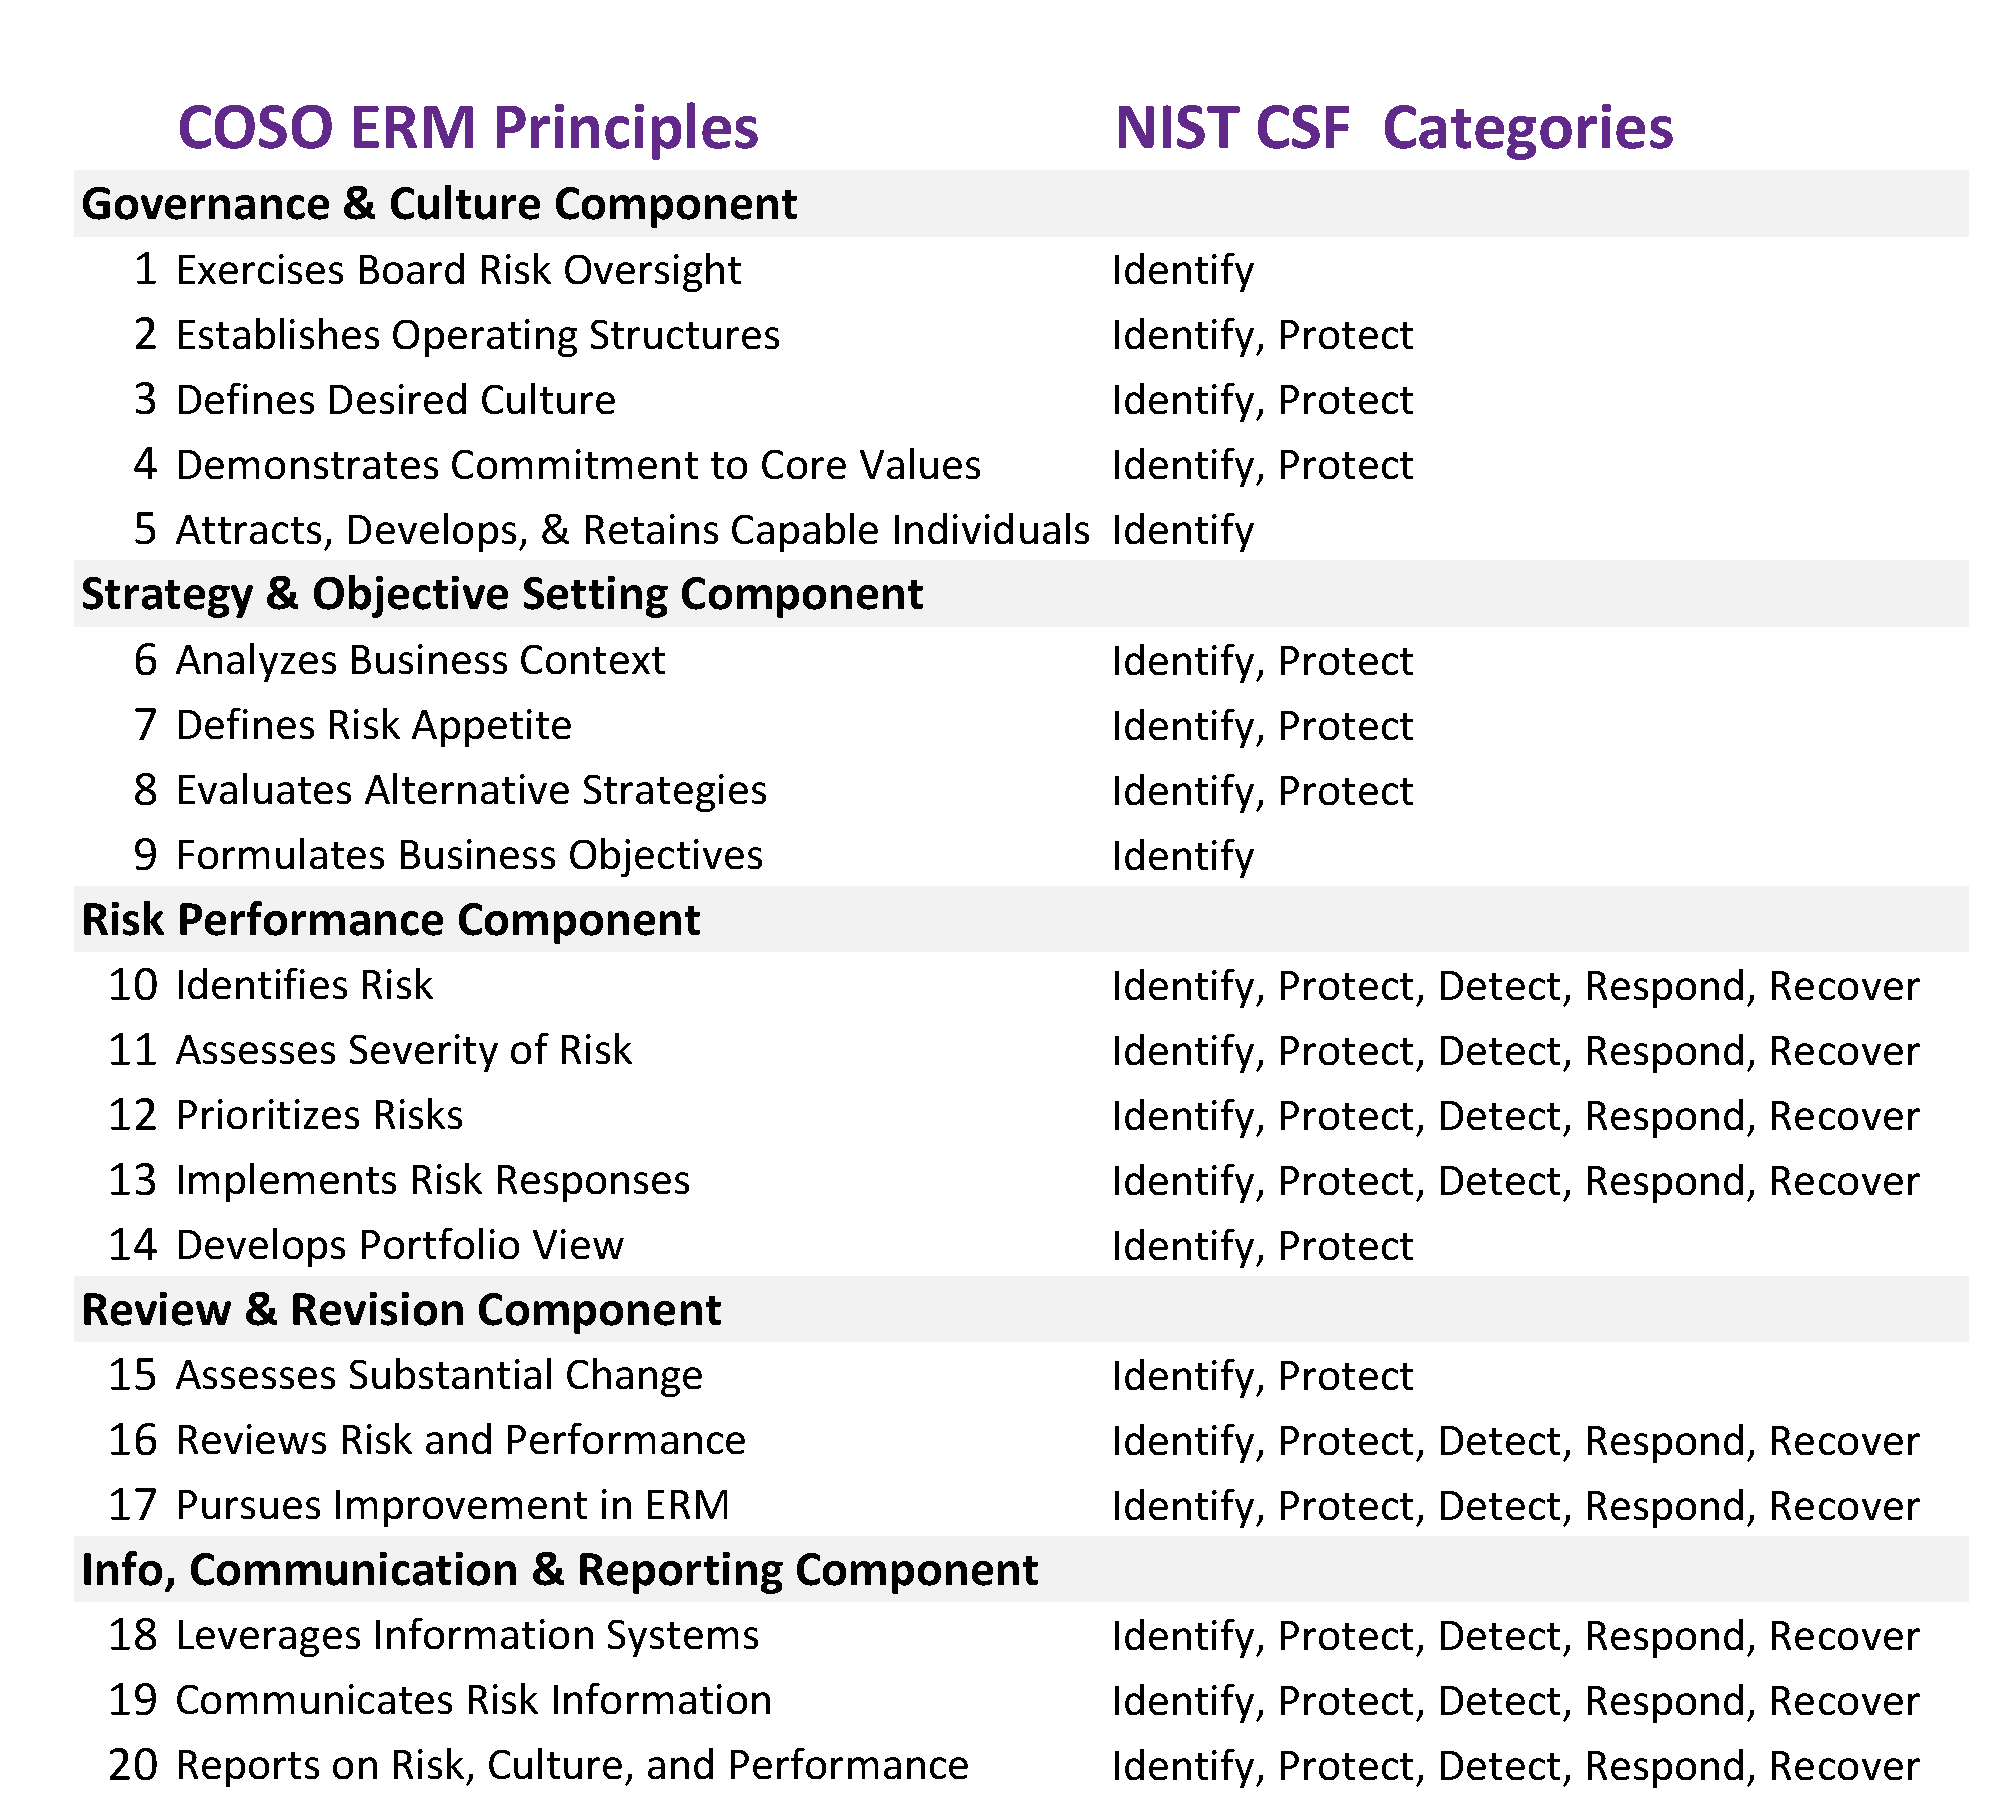 An initial sketch of which CSF areas are covered in the COSO ERM